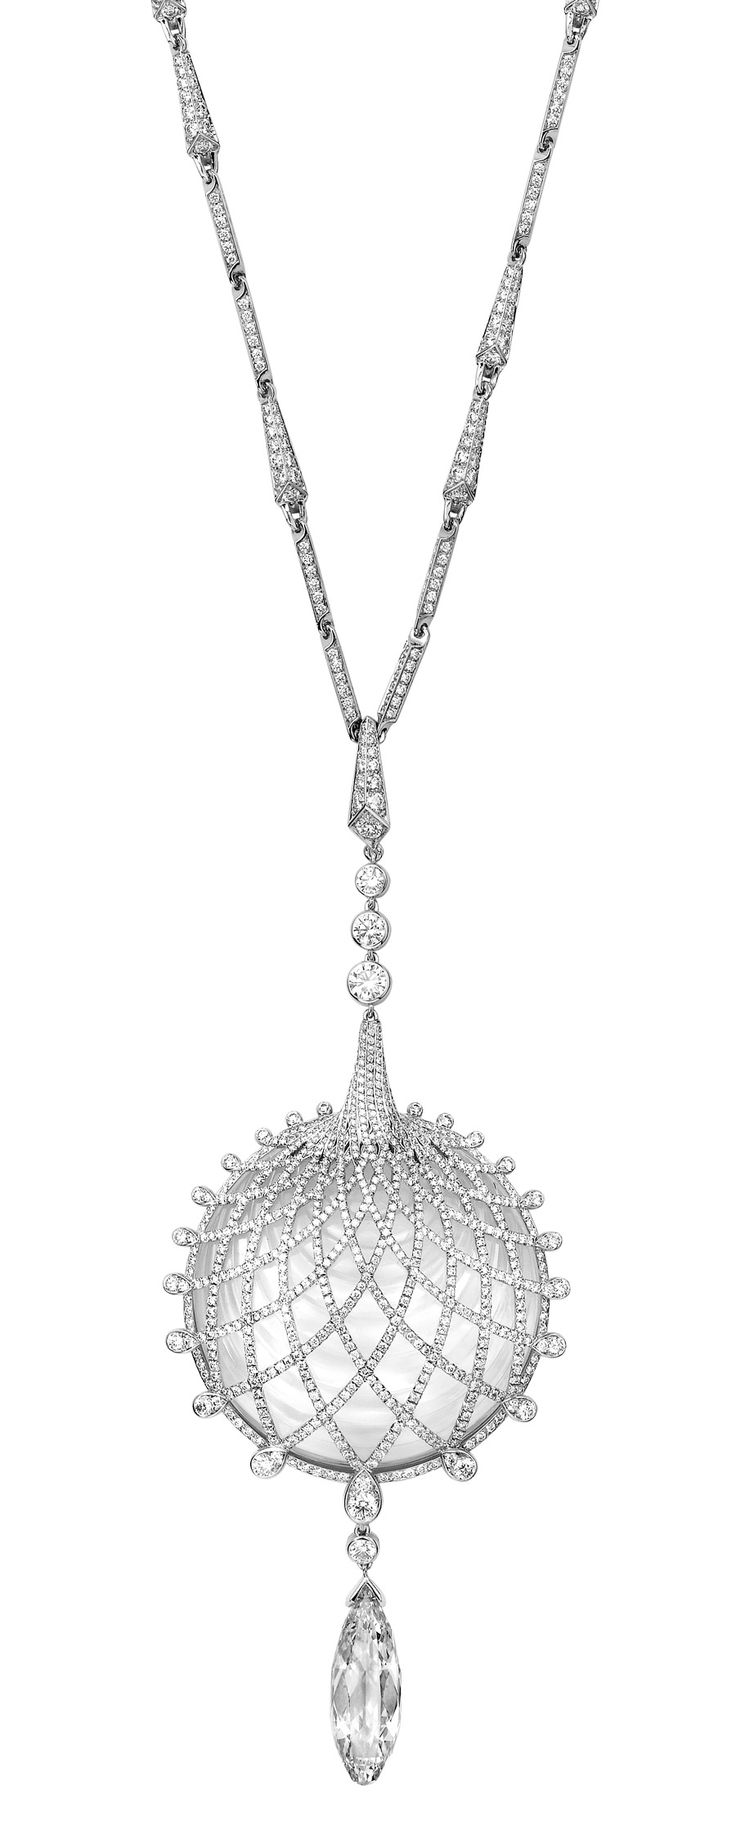 Cartier Biennale Necklace - White gold, one briolette-cut diamond, rock crystal, brilliants. PHOTO Vincent Wulveryck